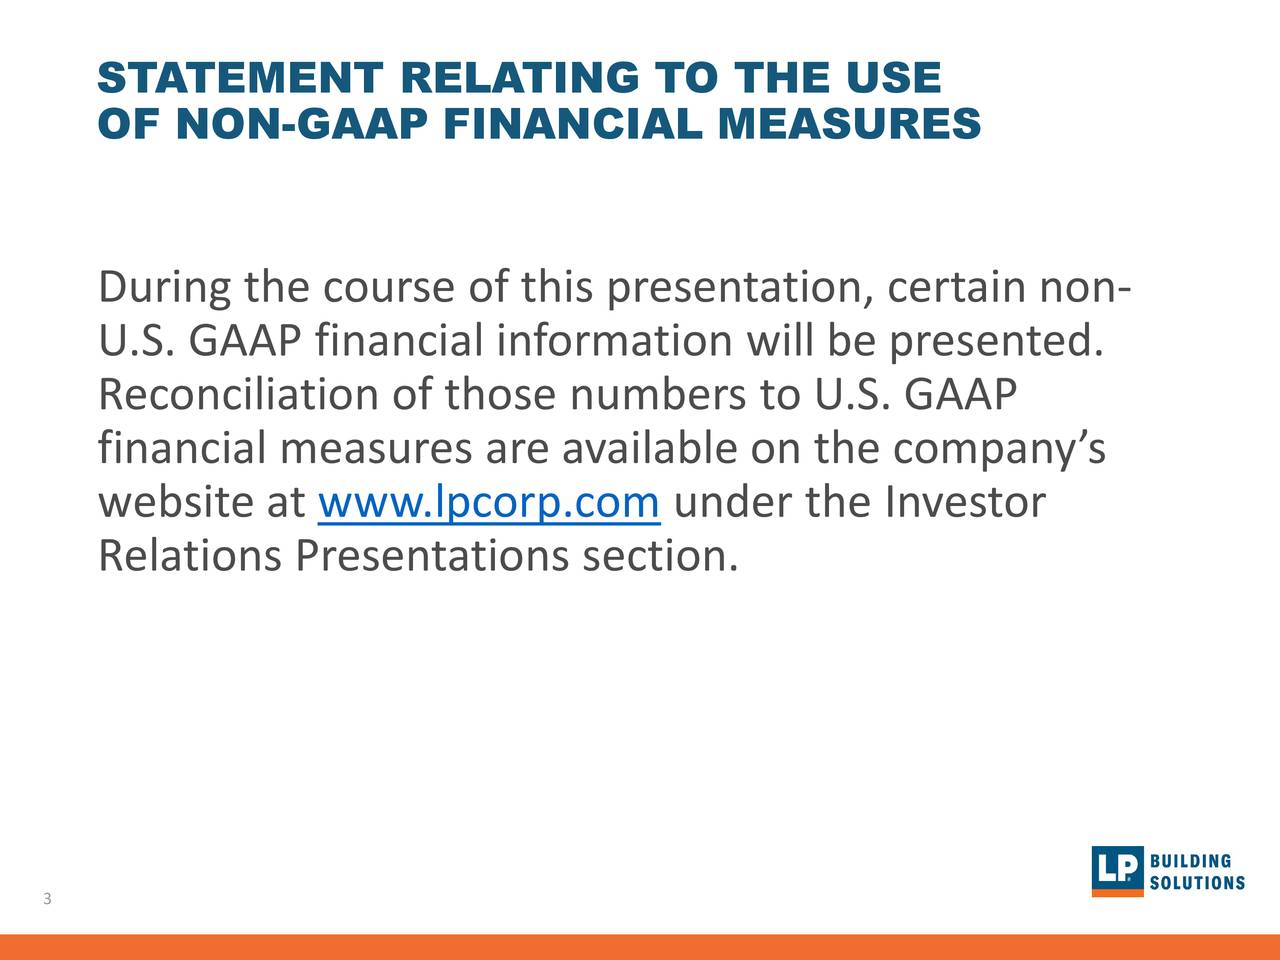 OF NON-GAAP FINANCIAL MEASURES During the course of this presentation, certain non- U.S. GAAP financial information will be presented. Reconciliation of those numbers to U.S. GAAP financial measures are available on the company's website at www.lpcorp.com under the Investor Relations Presentations section. 3